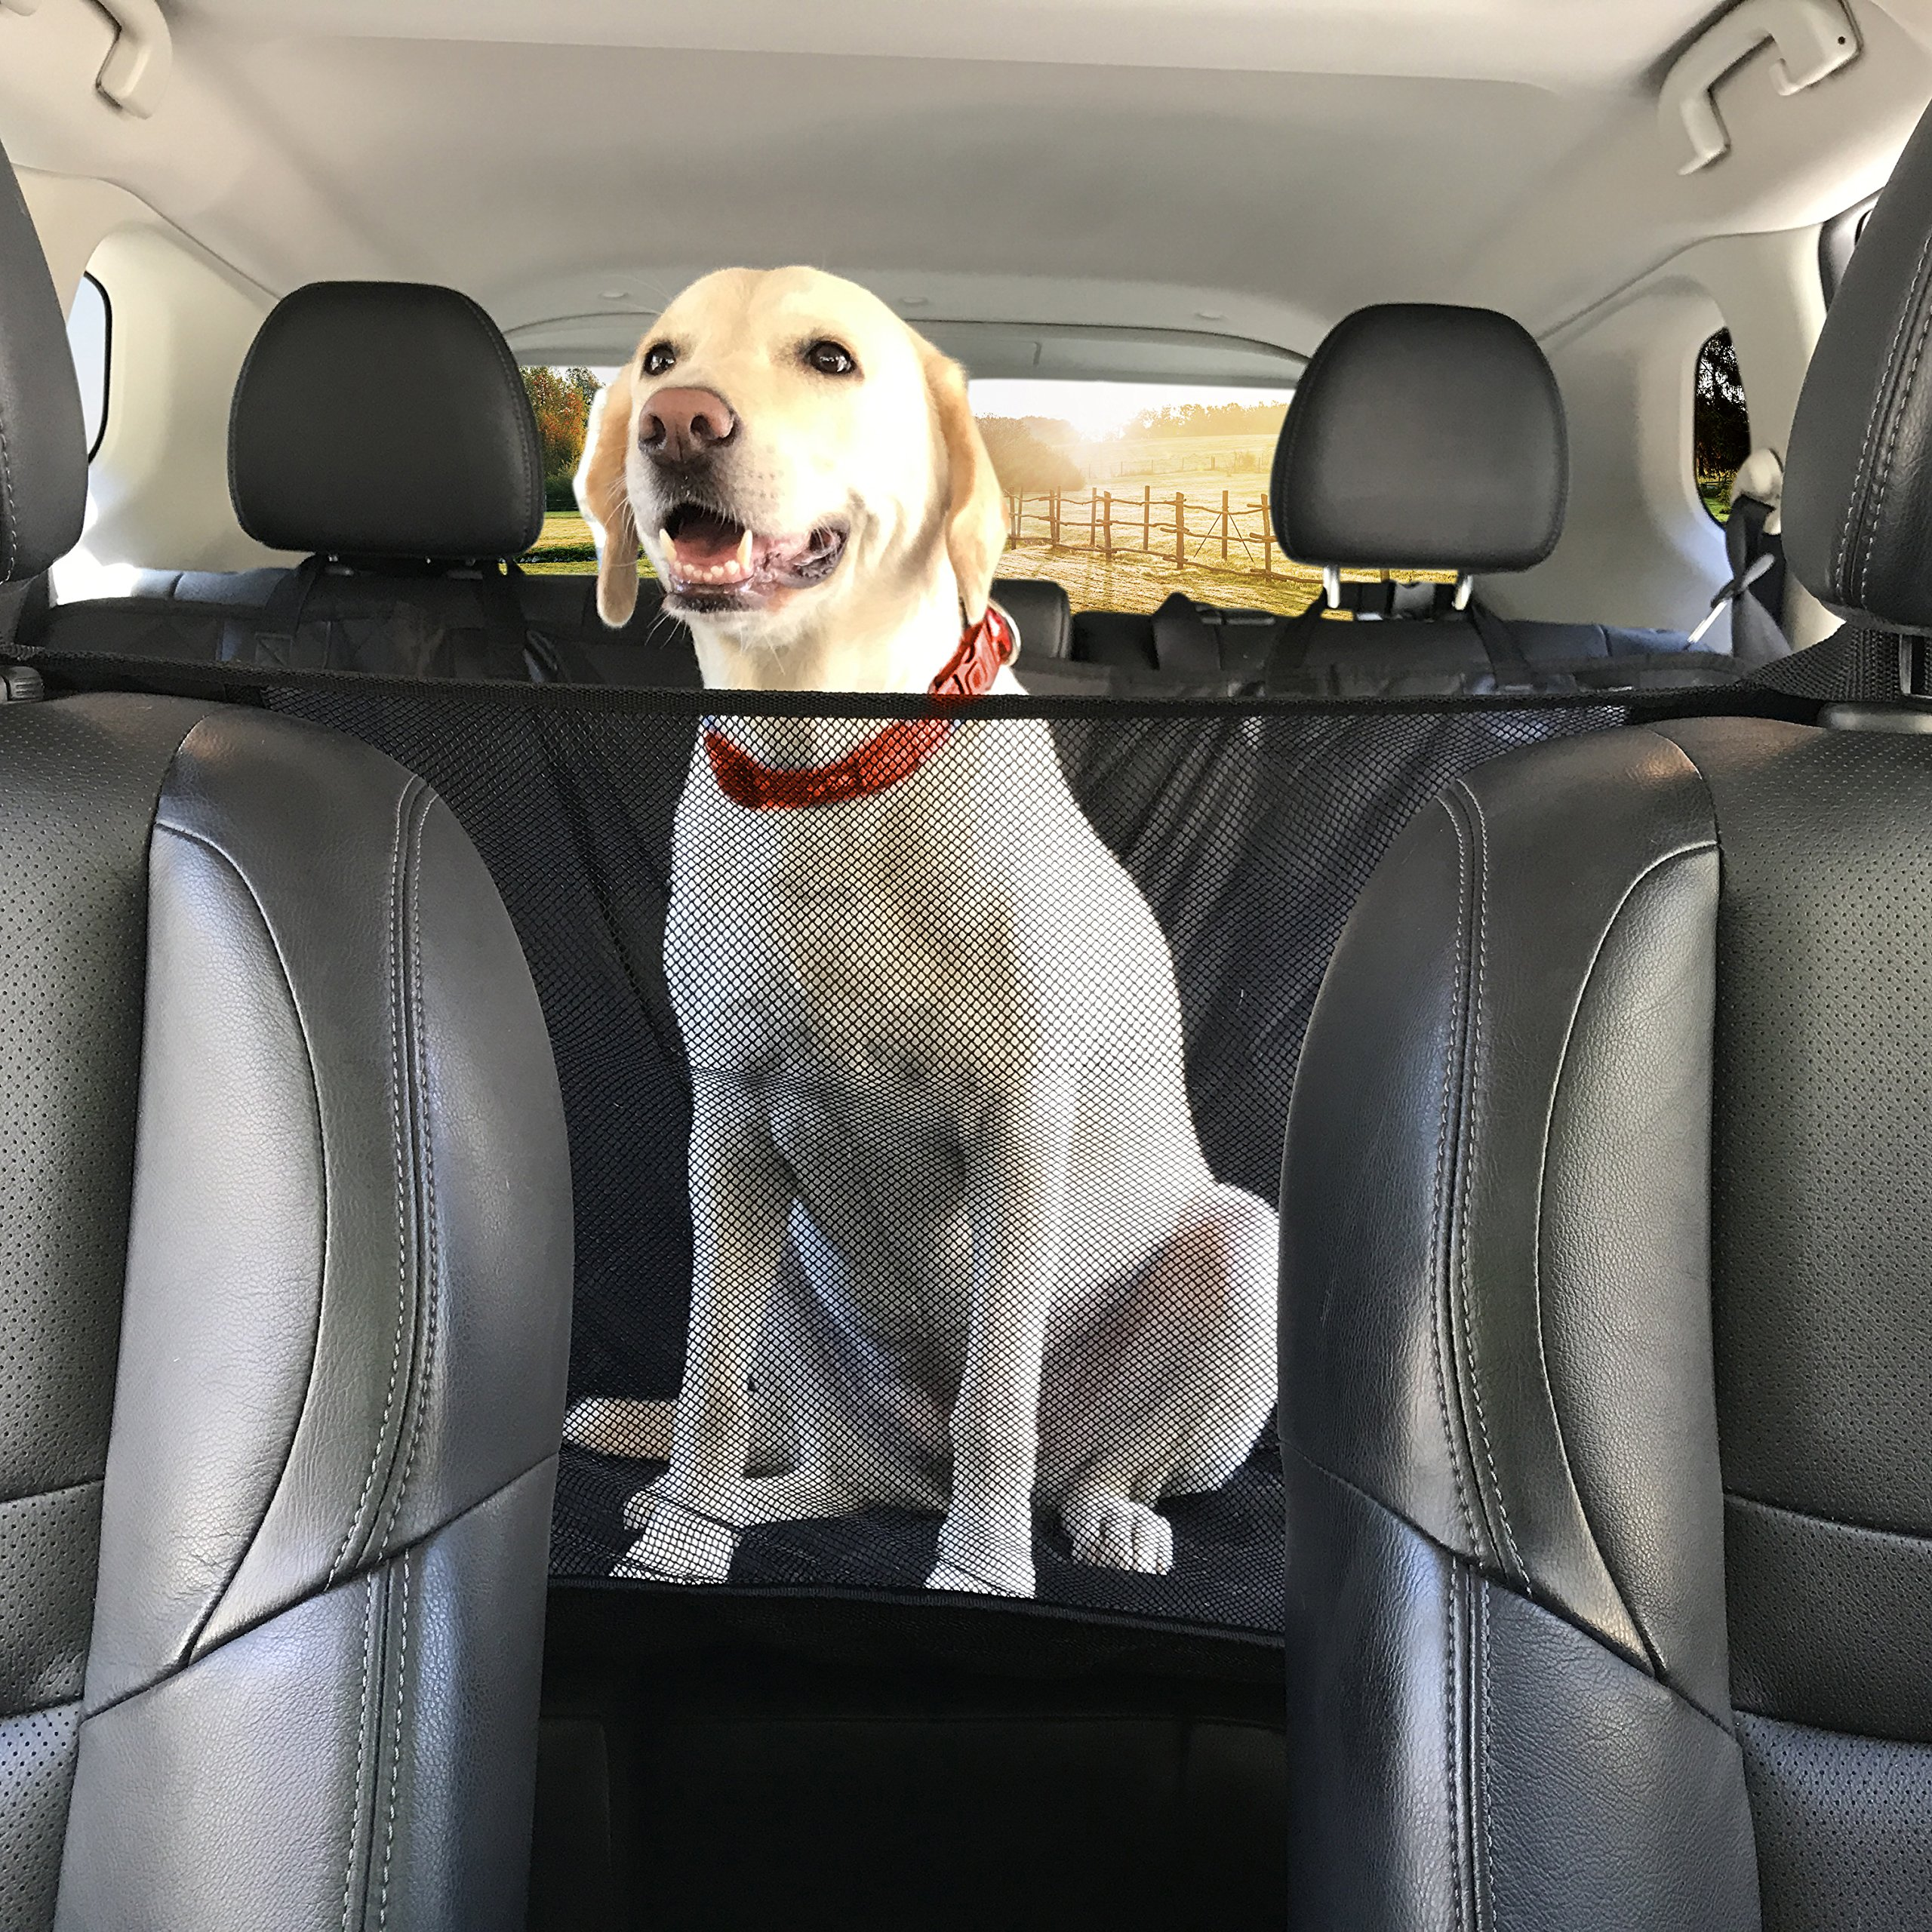 PREMIUM XL Dog Car Seat Cover Hammock Style And Cargo Liner For Cars, Trucks And Suv's. The Original Design You Can See Your Pet & Your Pet Sees You with the ClearView Window- Keeps Your Pet Calm. by Kululu (Image #1)